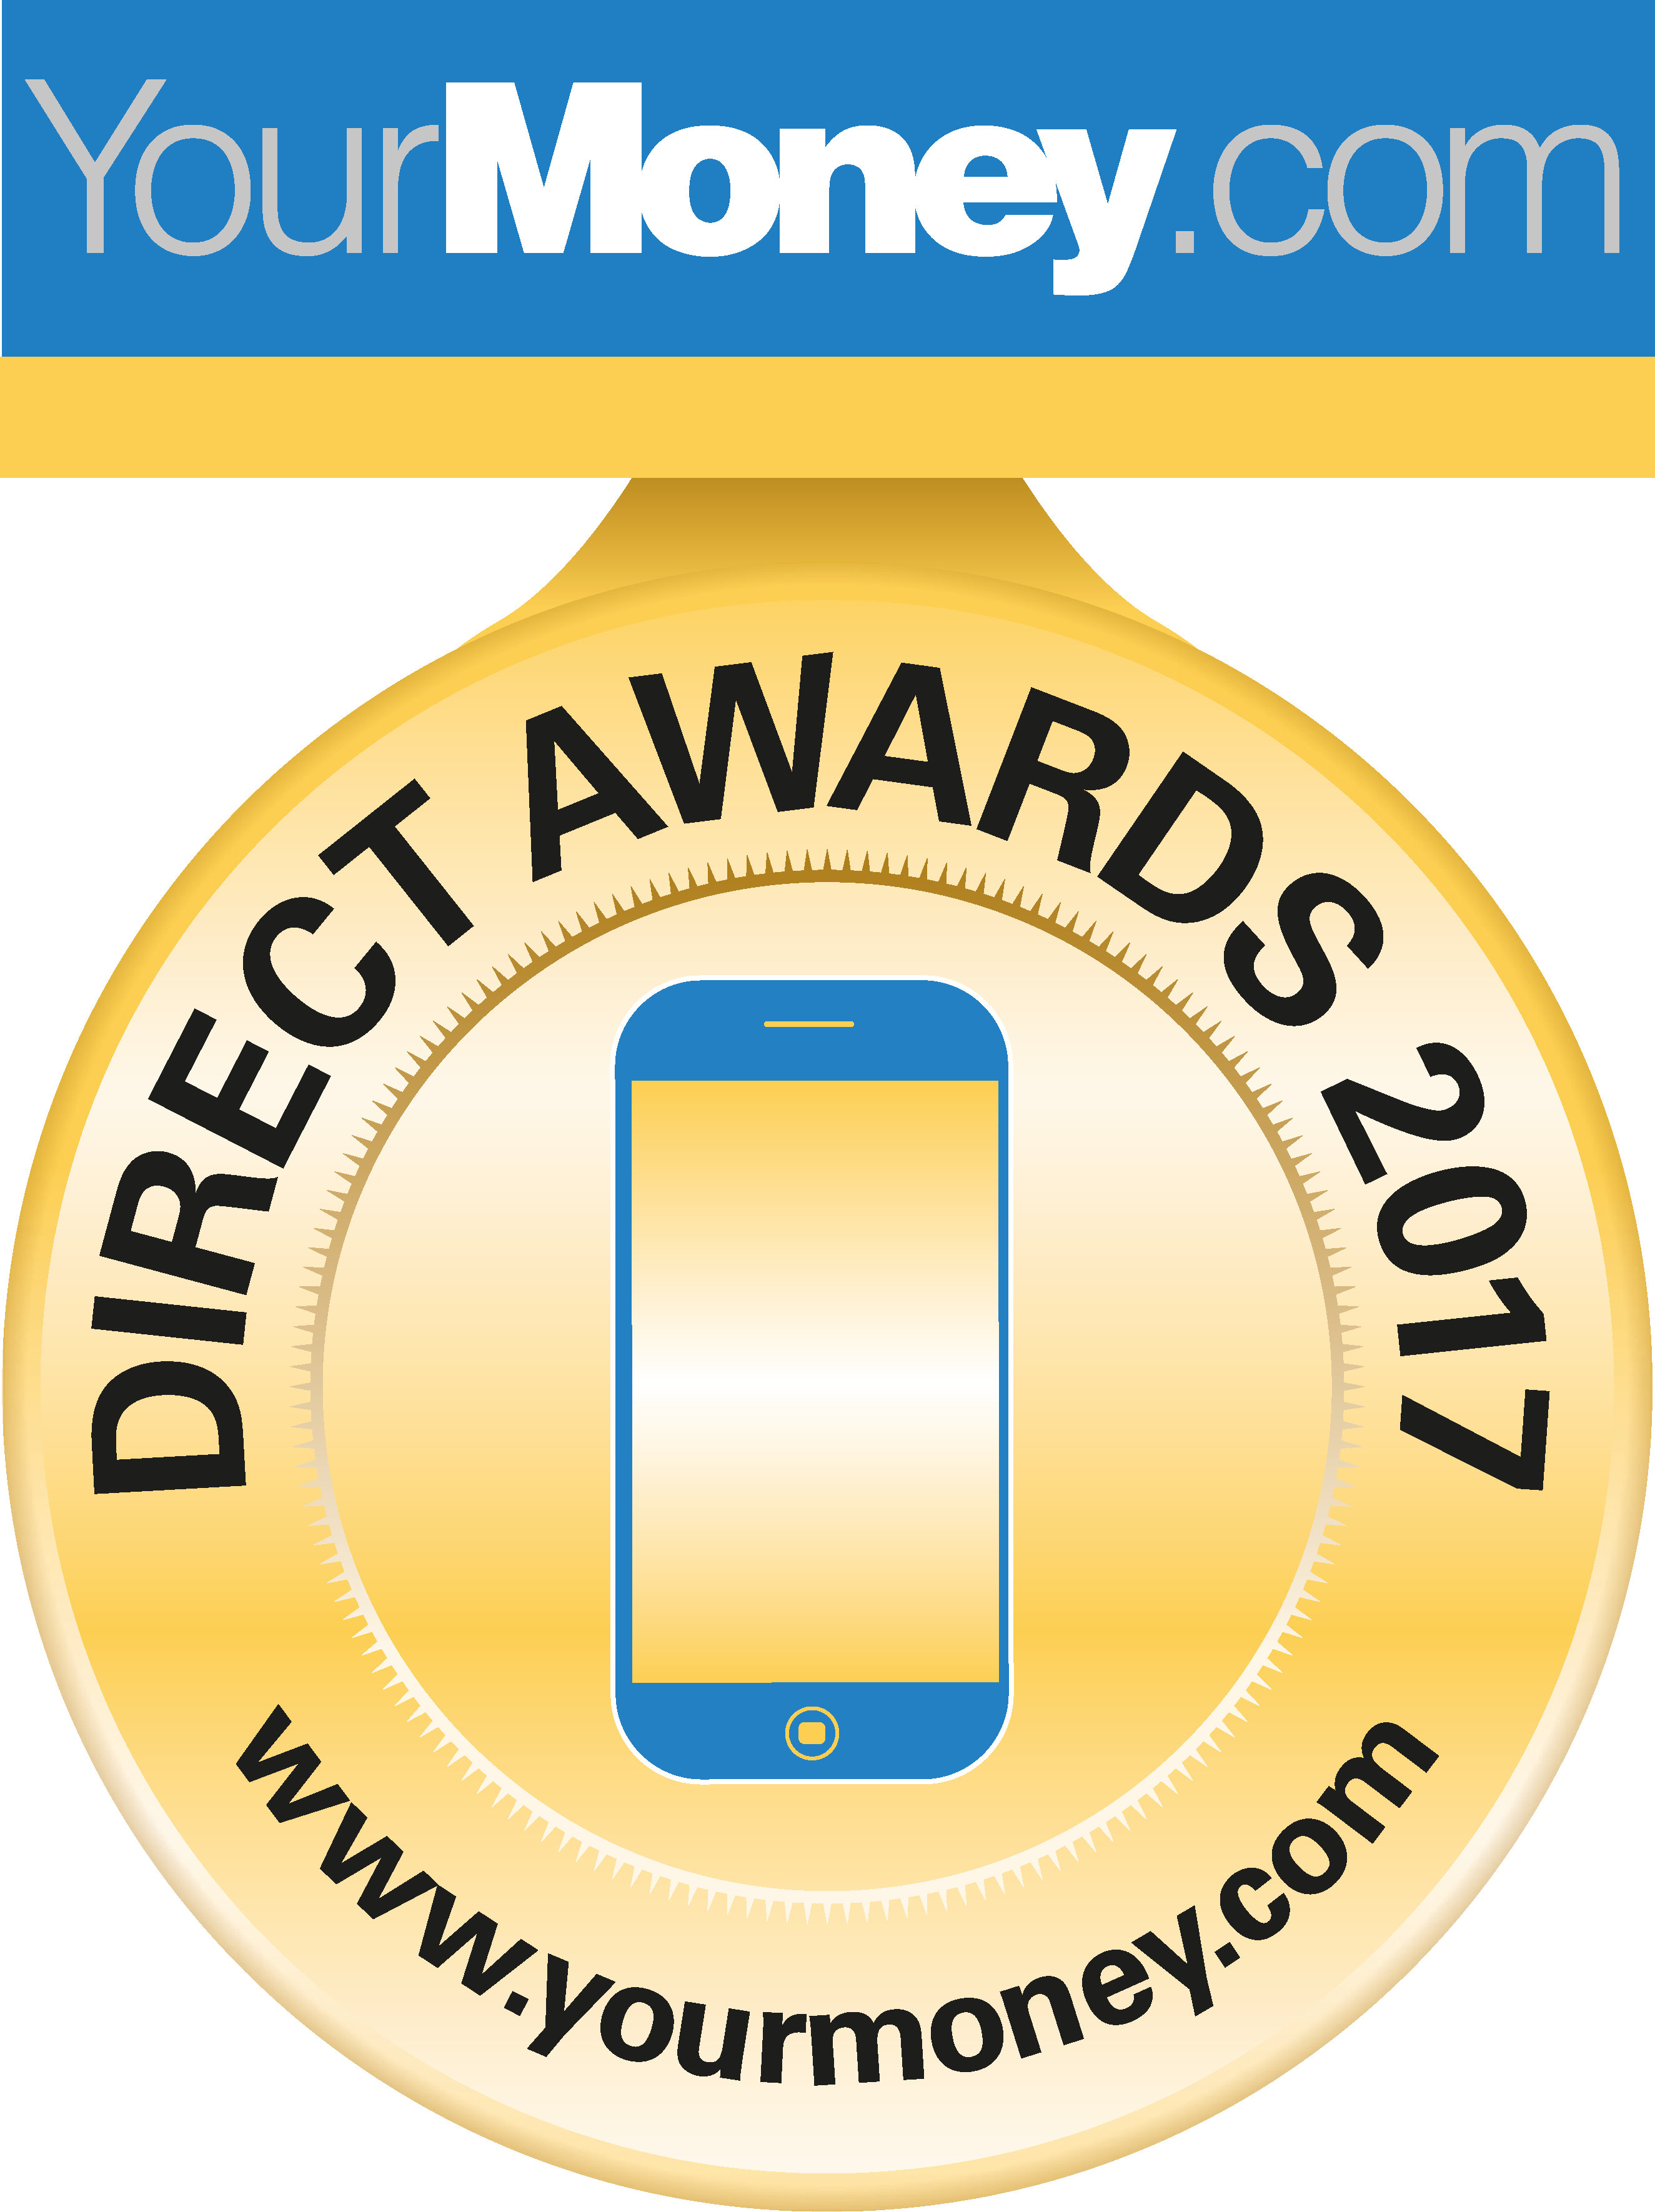 YourMoney.com Awards 2017 Direct